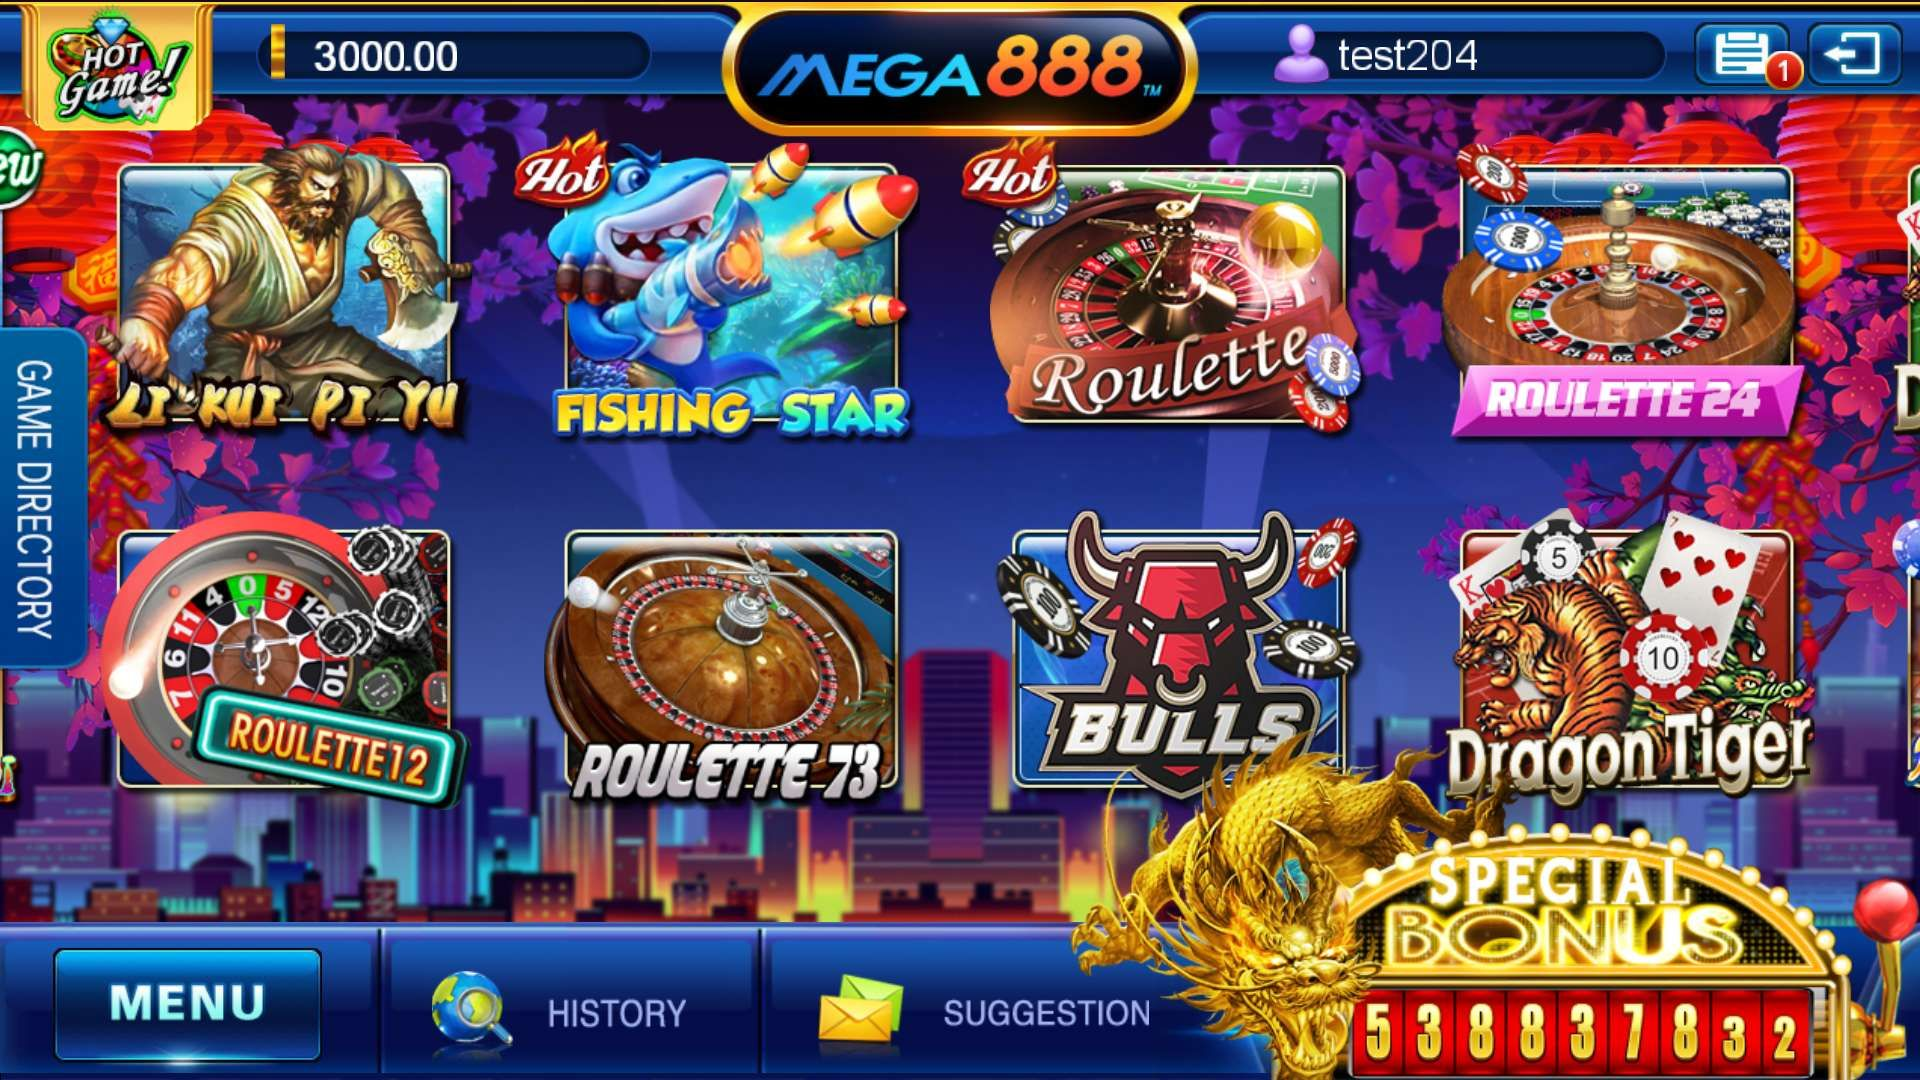 5 BENEFITS OF PATRONIZING LICENSED AND REGULATED ONLINE CASINO SUCH AS MEGA888 MALAYSIA